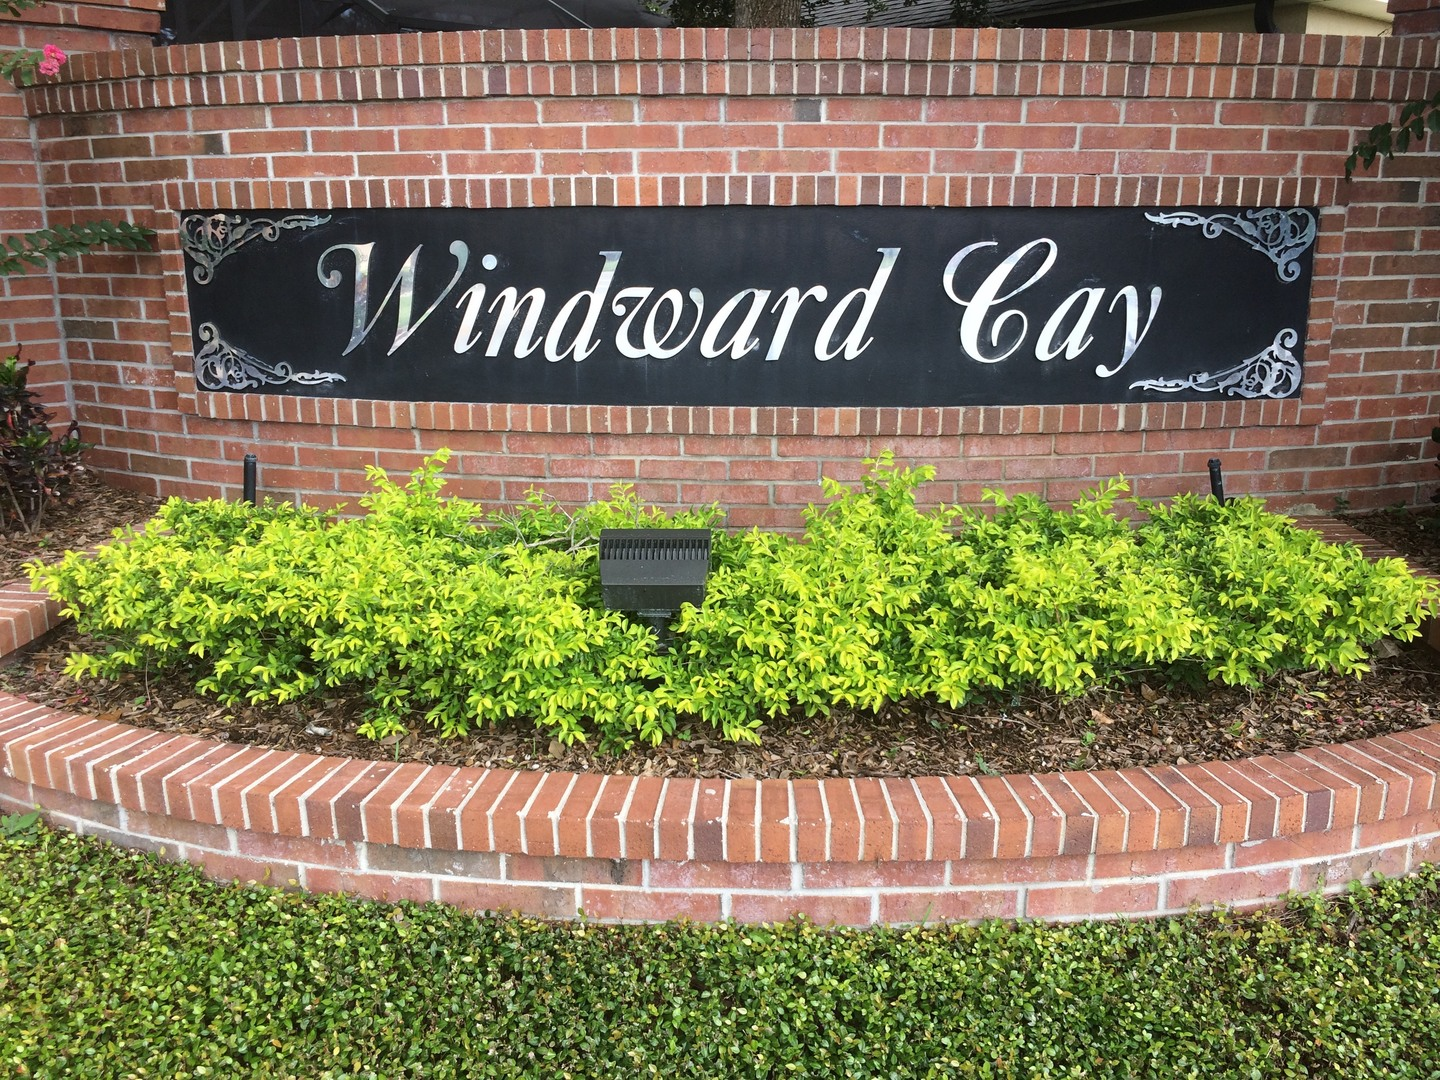 windward cay winter garden florida homes for sale